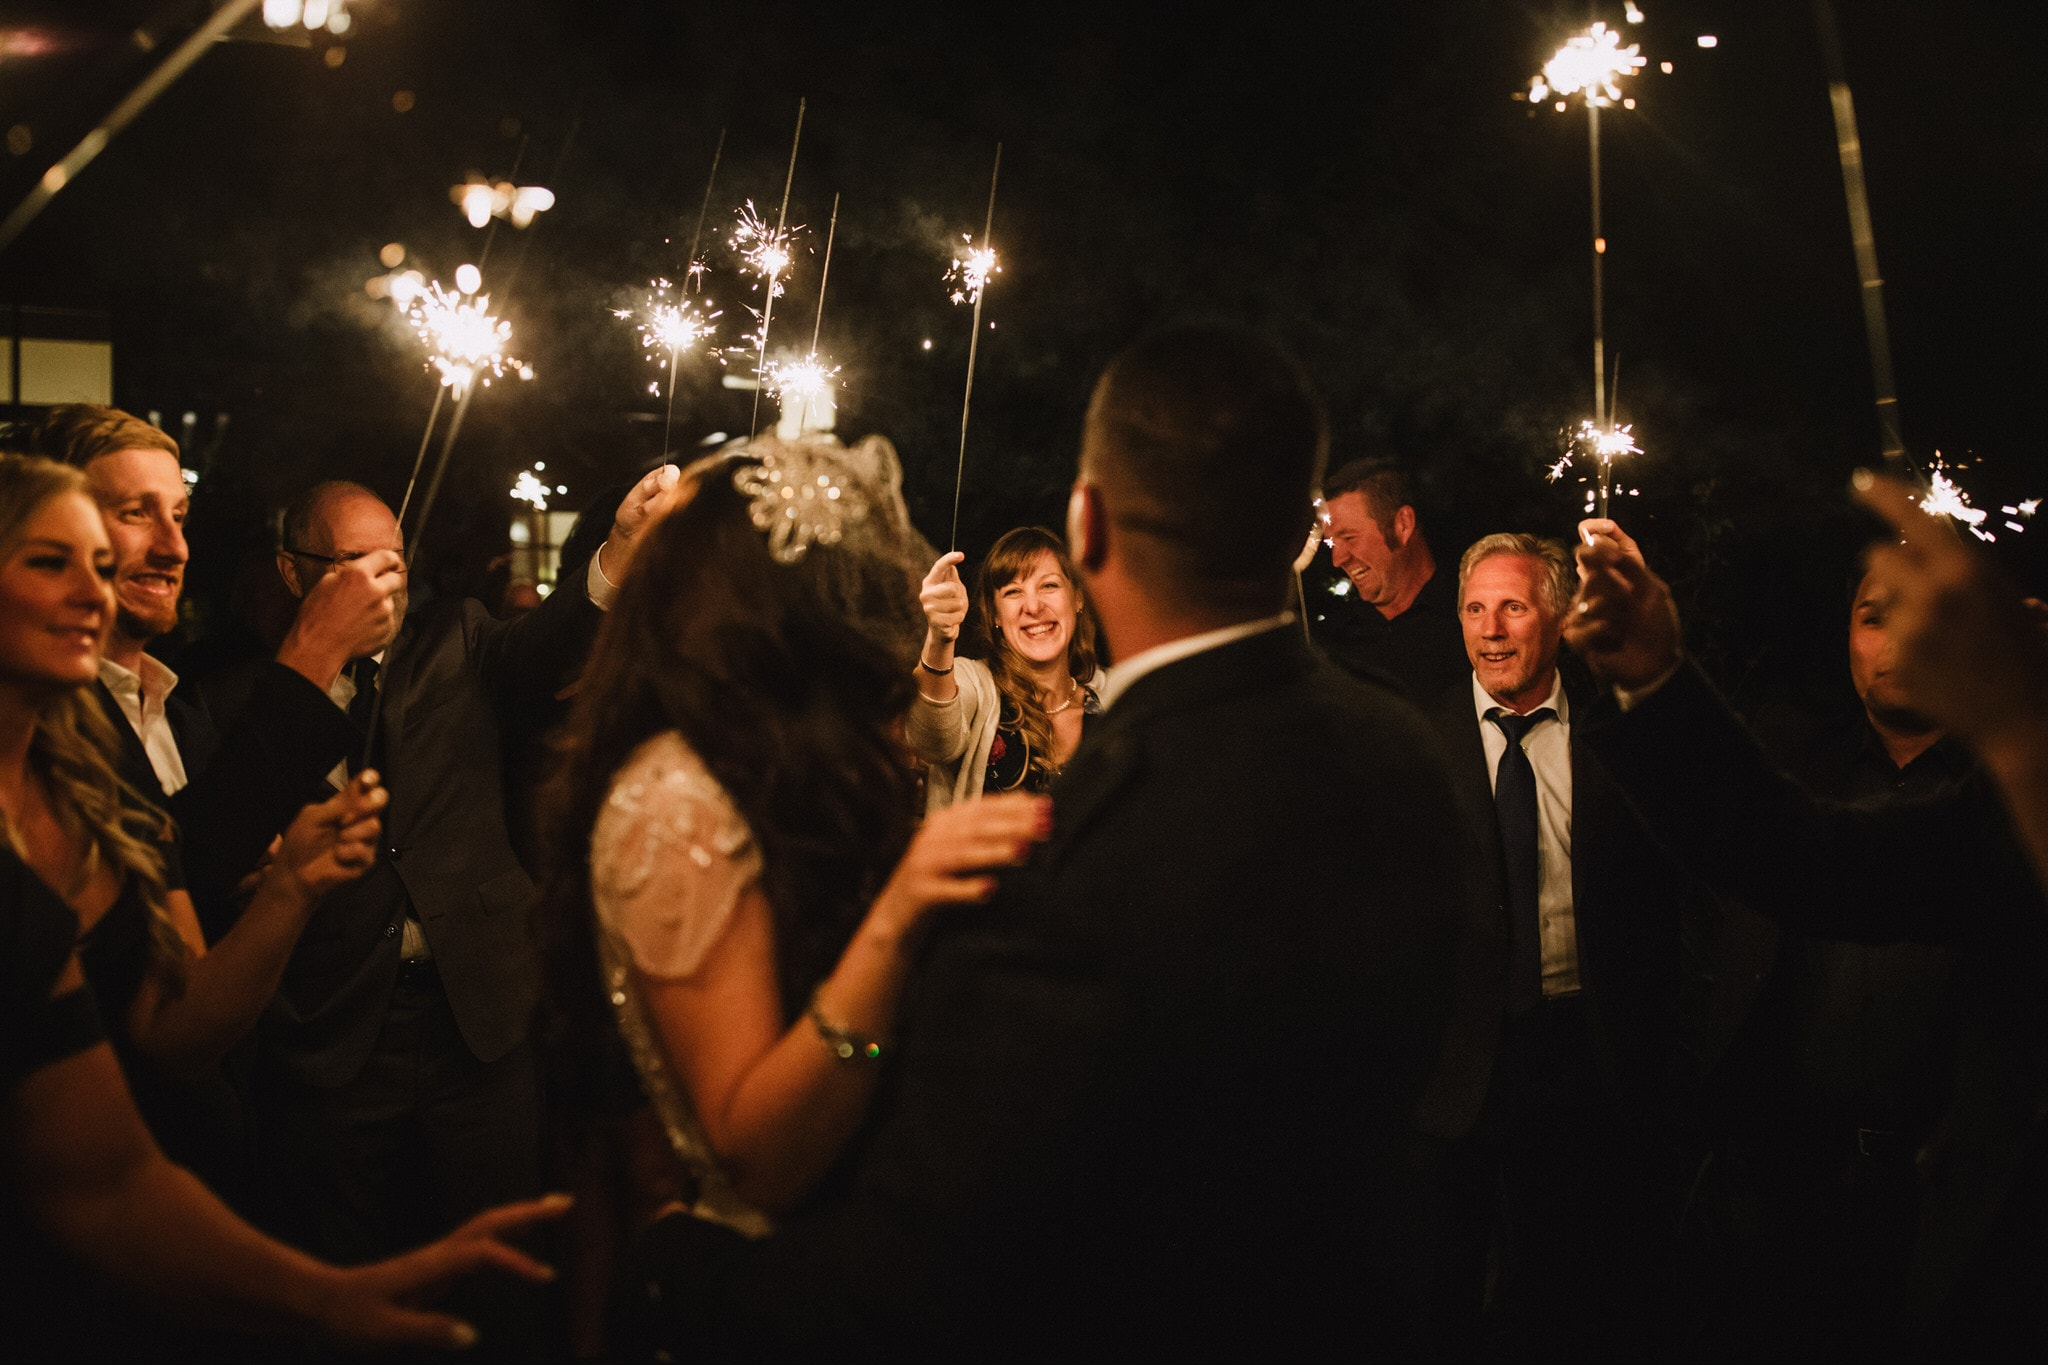 Wedding sparklers at Brew Creek Centre Whistler. Destination wedding photographer Brent Calis.